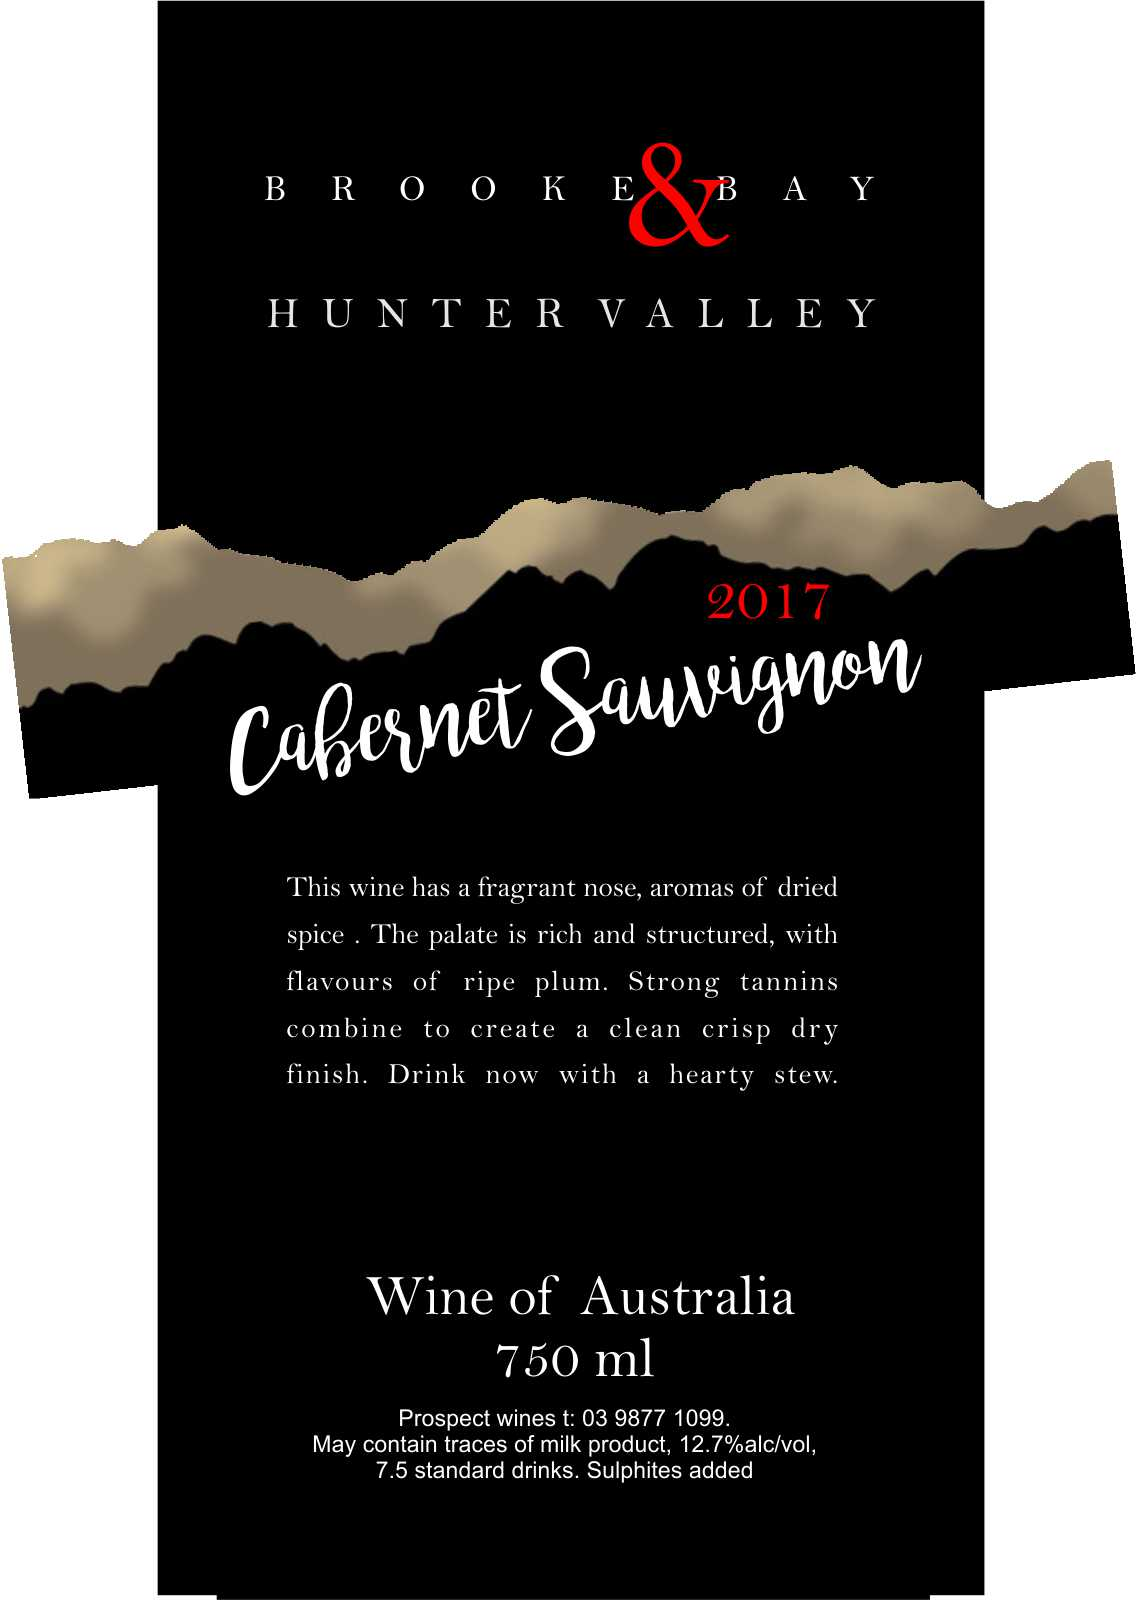 HUNTER VALLEY CABERNET SAUVIGNON